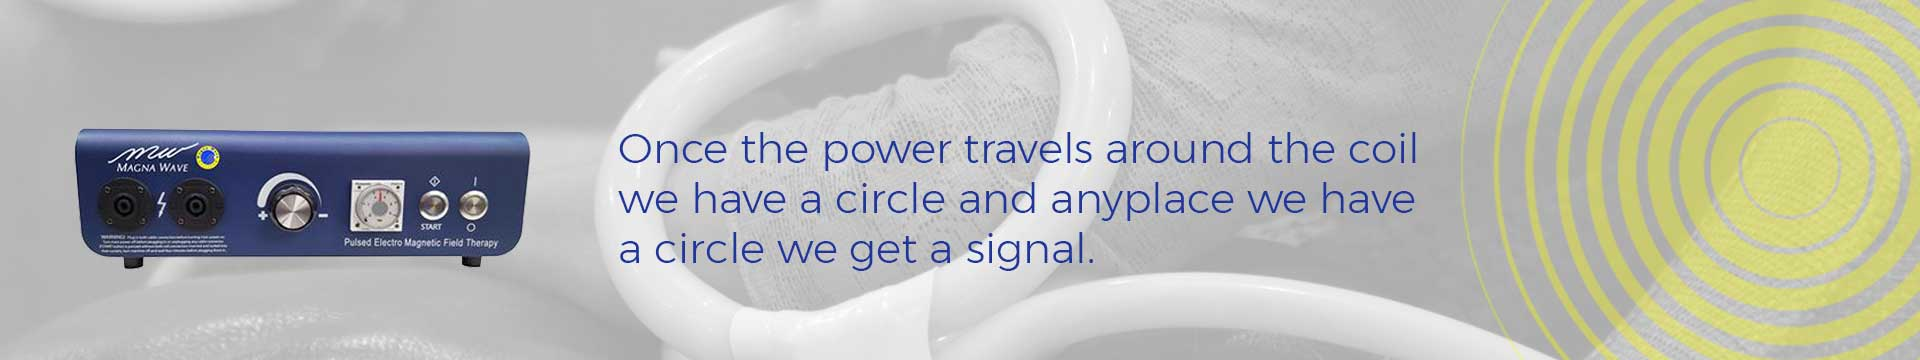 Once the power travels around the coil we have a circle and any place we have a circle we get a signal